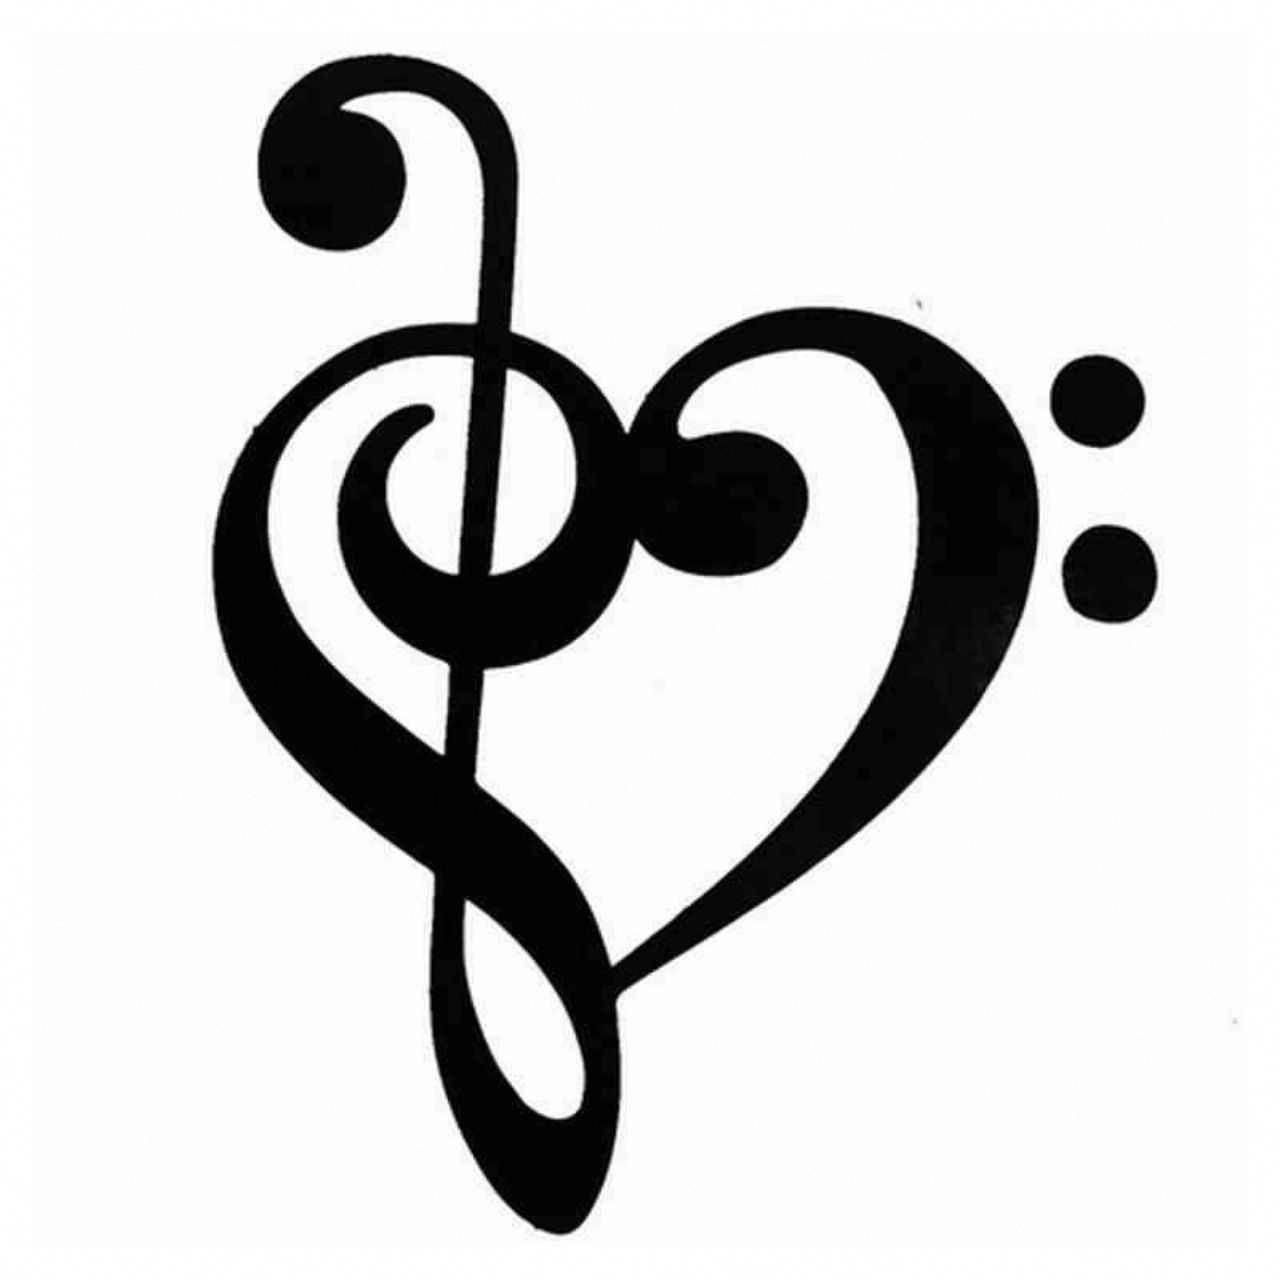 150+ Meaningful Treble Clef Tattoo Designs For Music